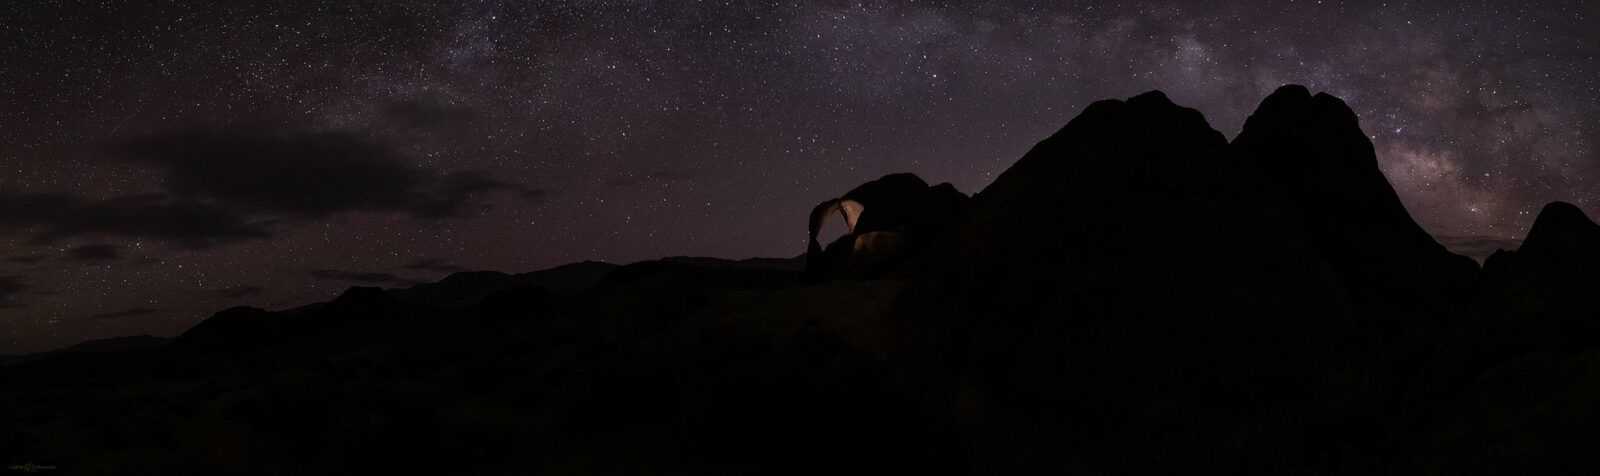 astrophotography at Cyclops Arch, Alabama Hills, California